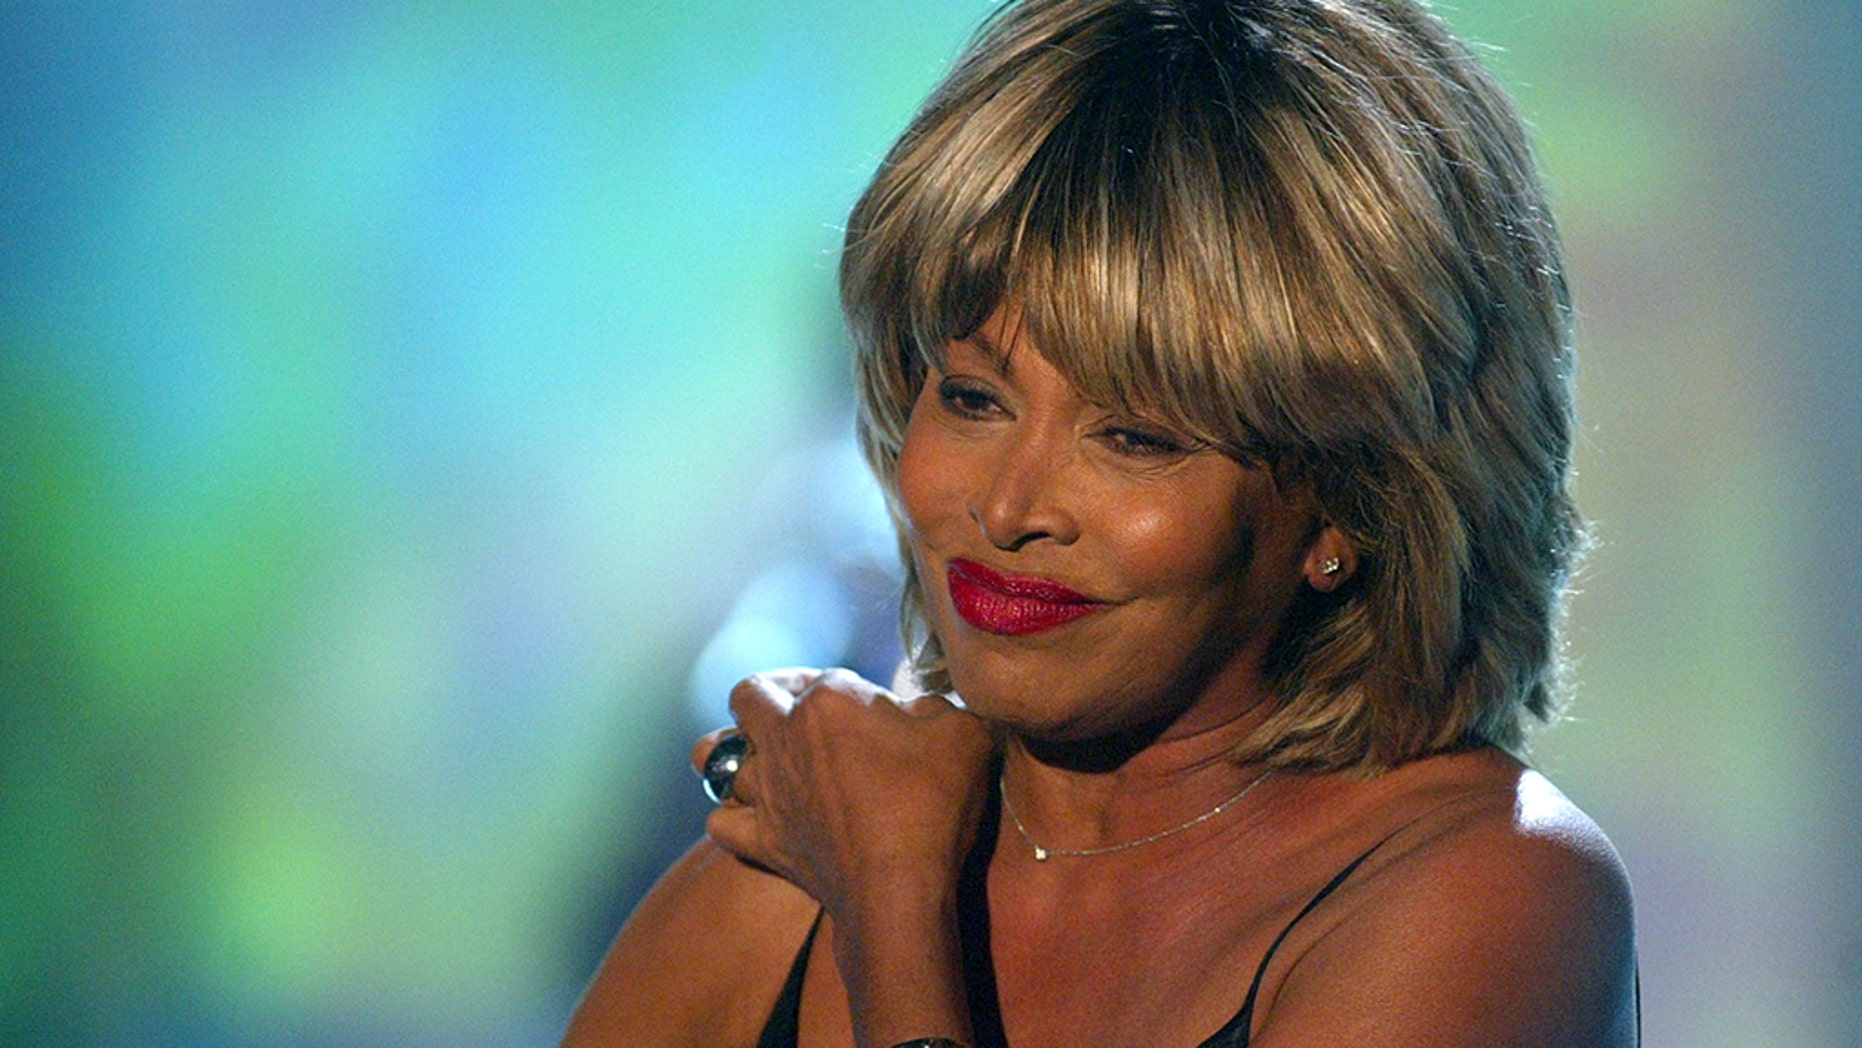 Tina Turner admitted she tried to commit suicide during her marriage to Ike Turner.